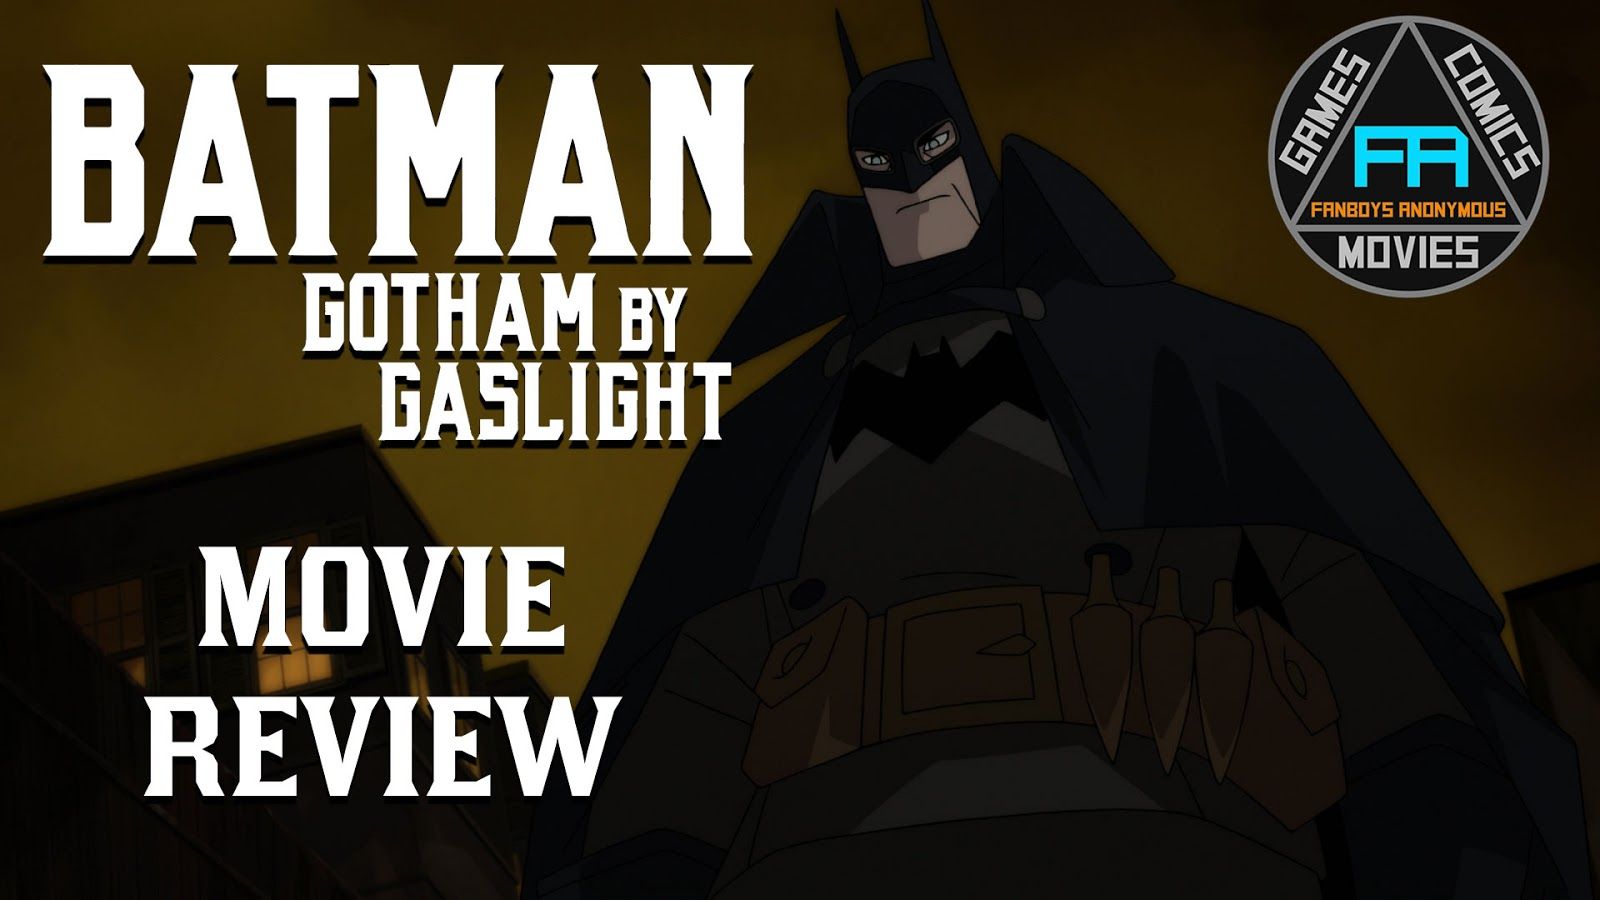 HD Batman: Gotham by Gaslight photos screen shots poster